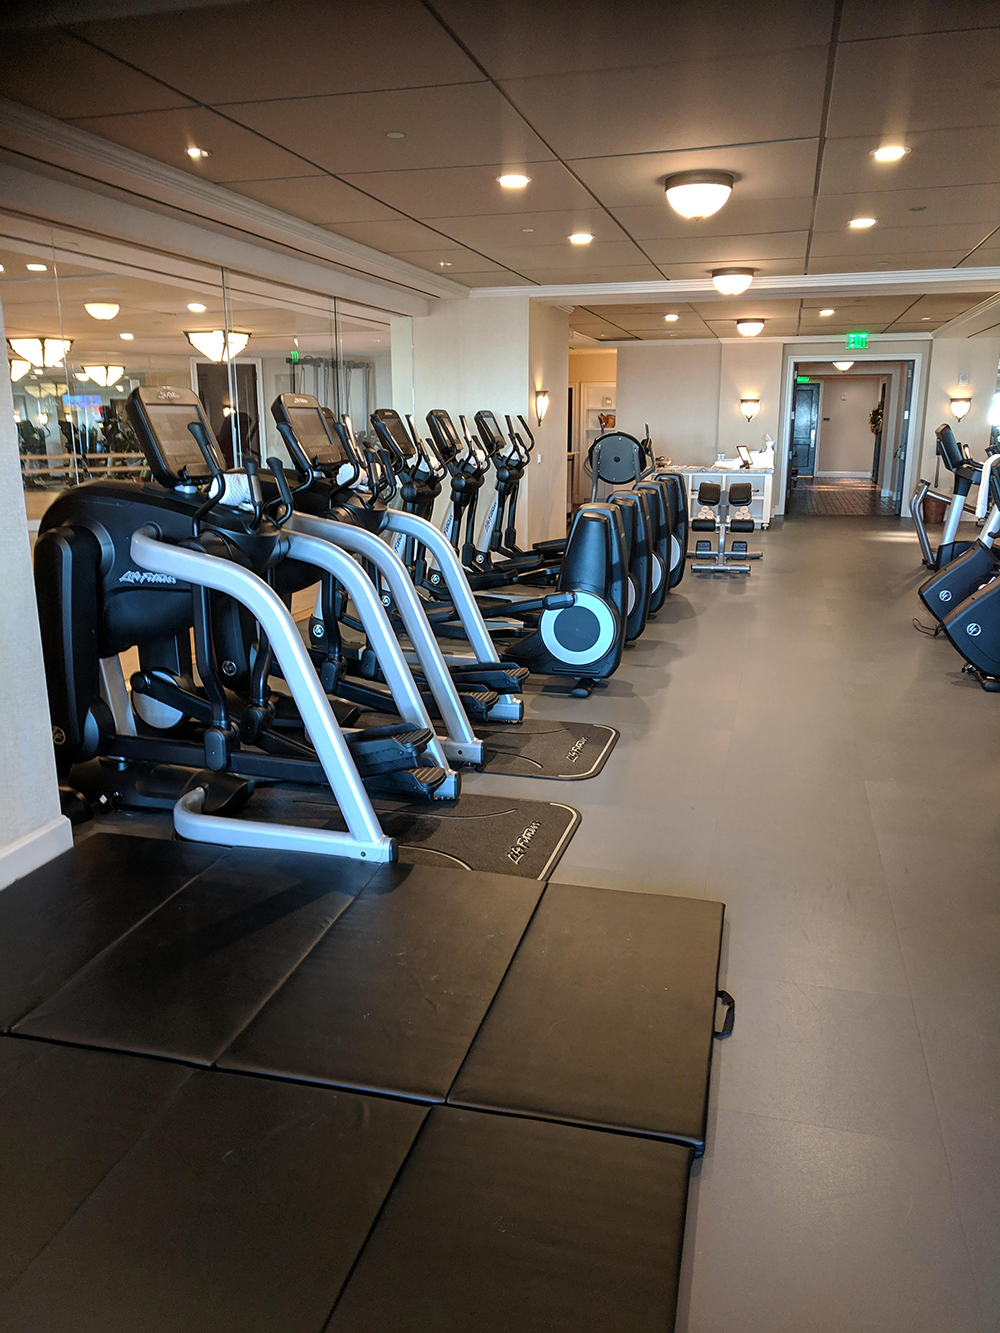 Spa Montage's fitness center has everything you could ever want while working out.